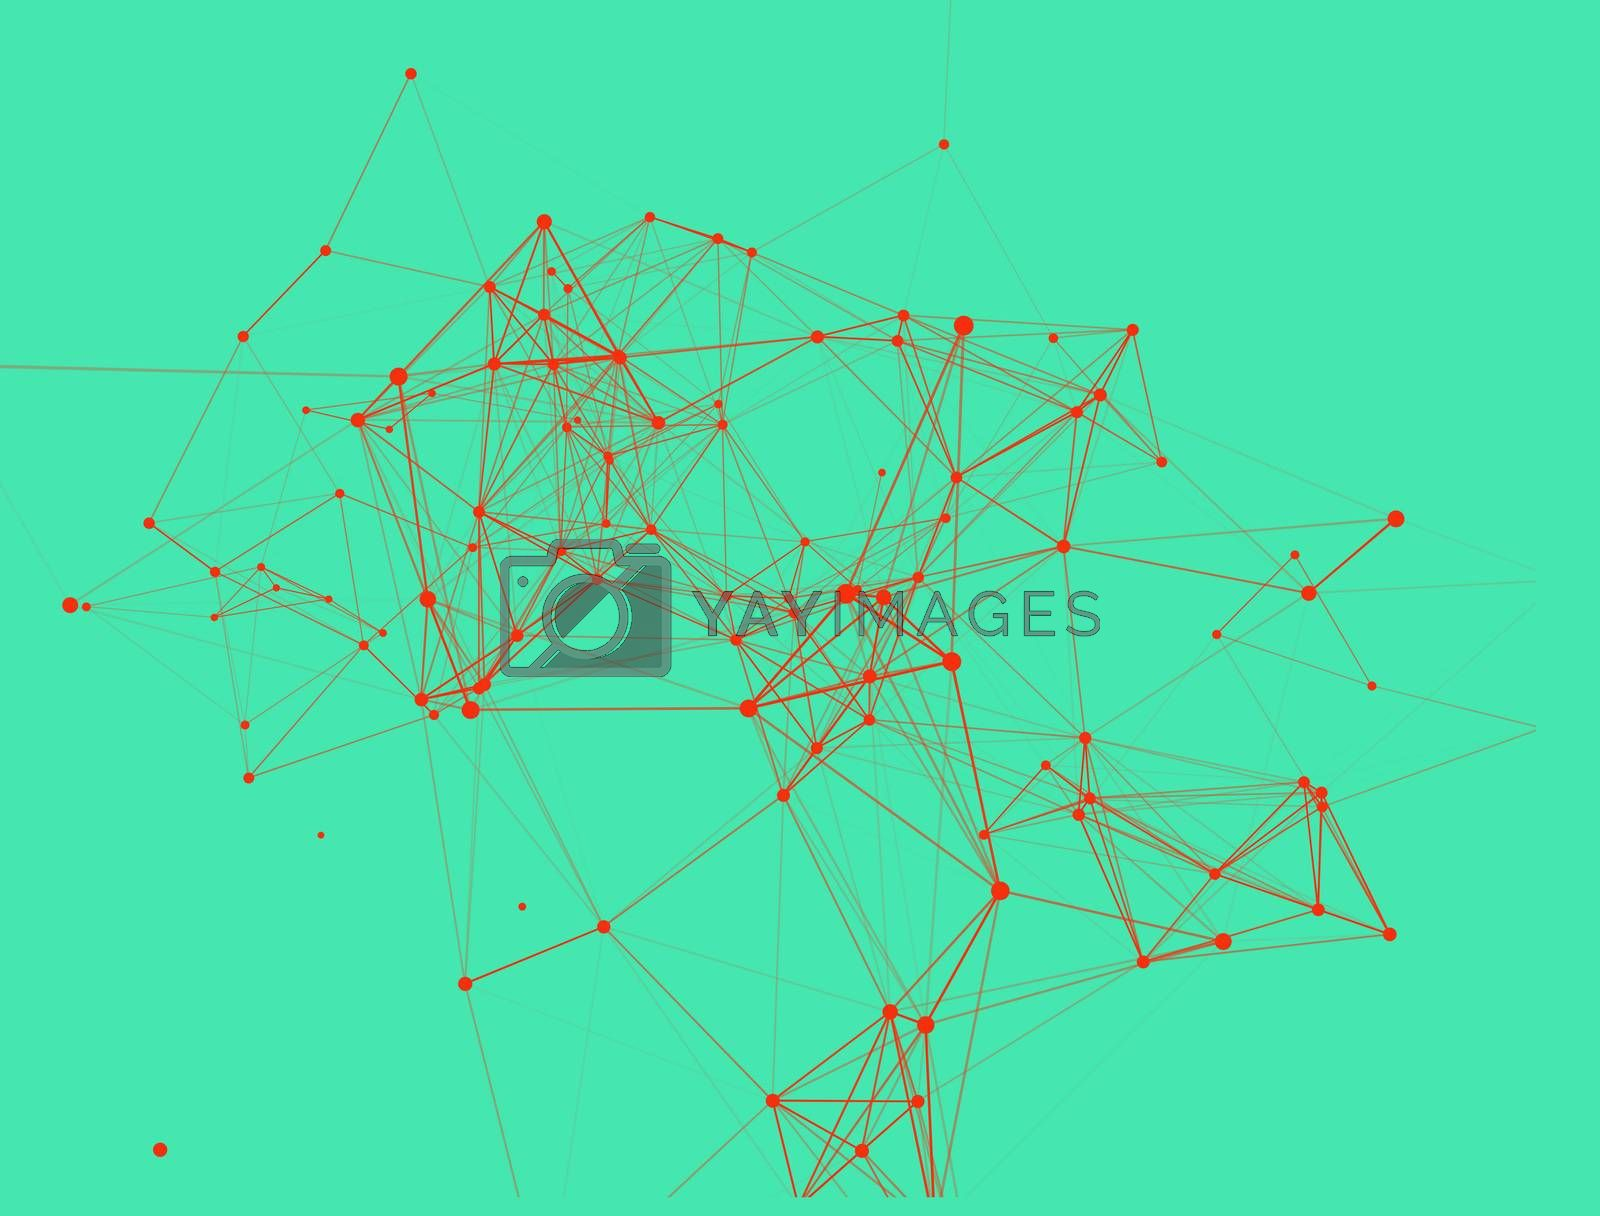 Trendy line art icon with red dots and line on green background. Decorative backdrop. Business concept. Abstract geometric pattern. Black design element. Trendy decor.